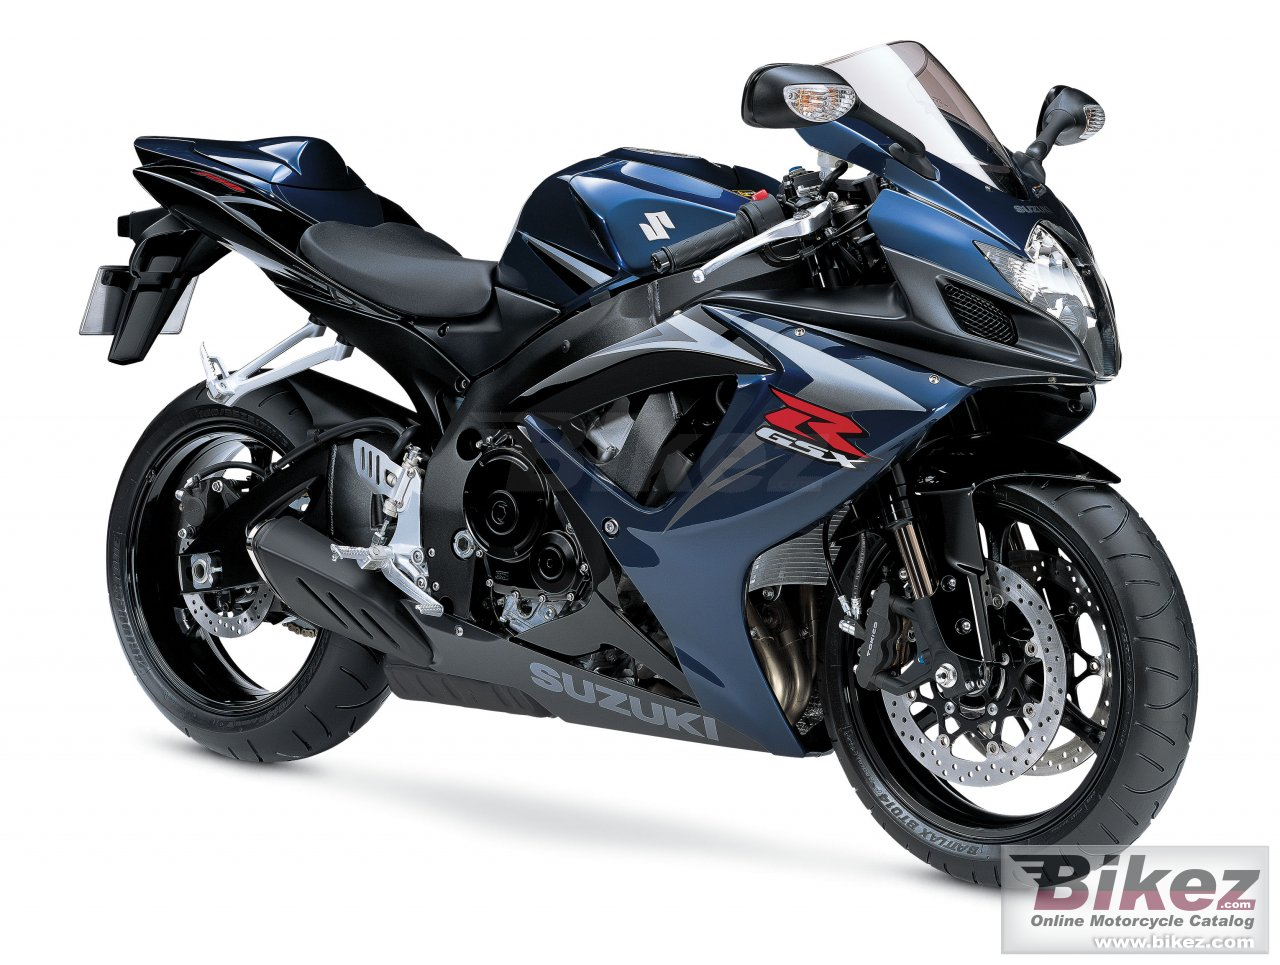 Big Suzuki gsx-r 750 picture and wallpaper from Bikez.com